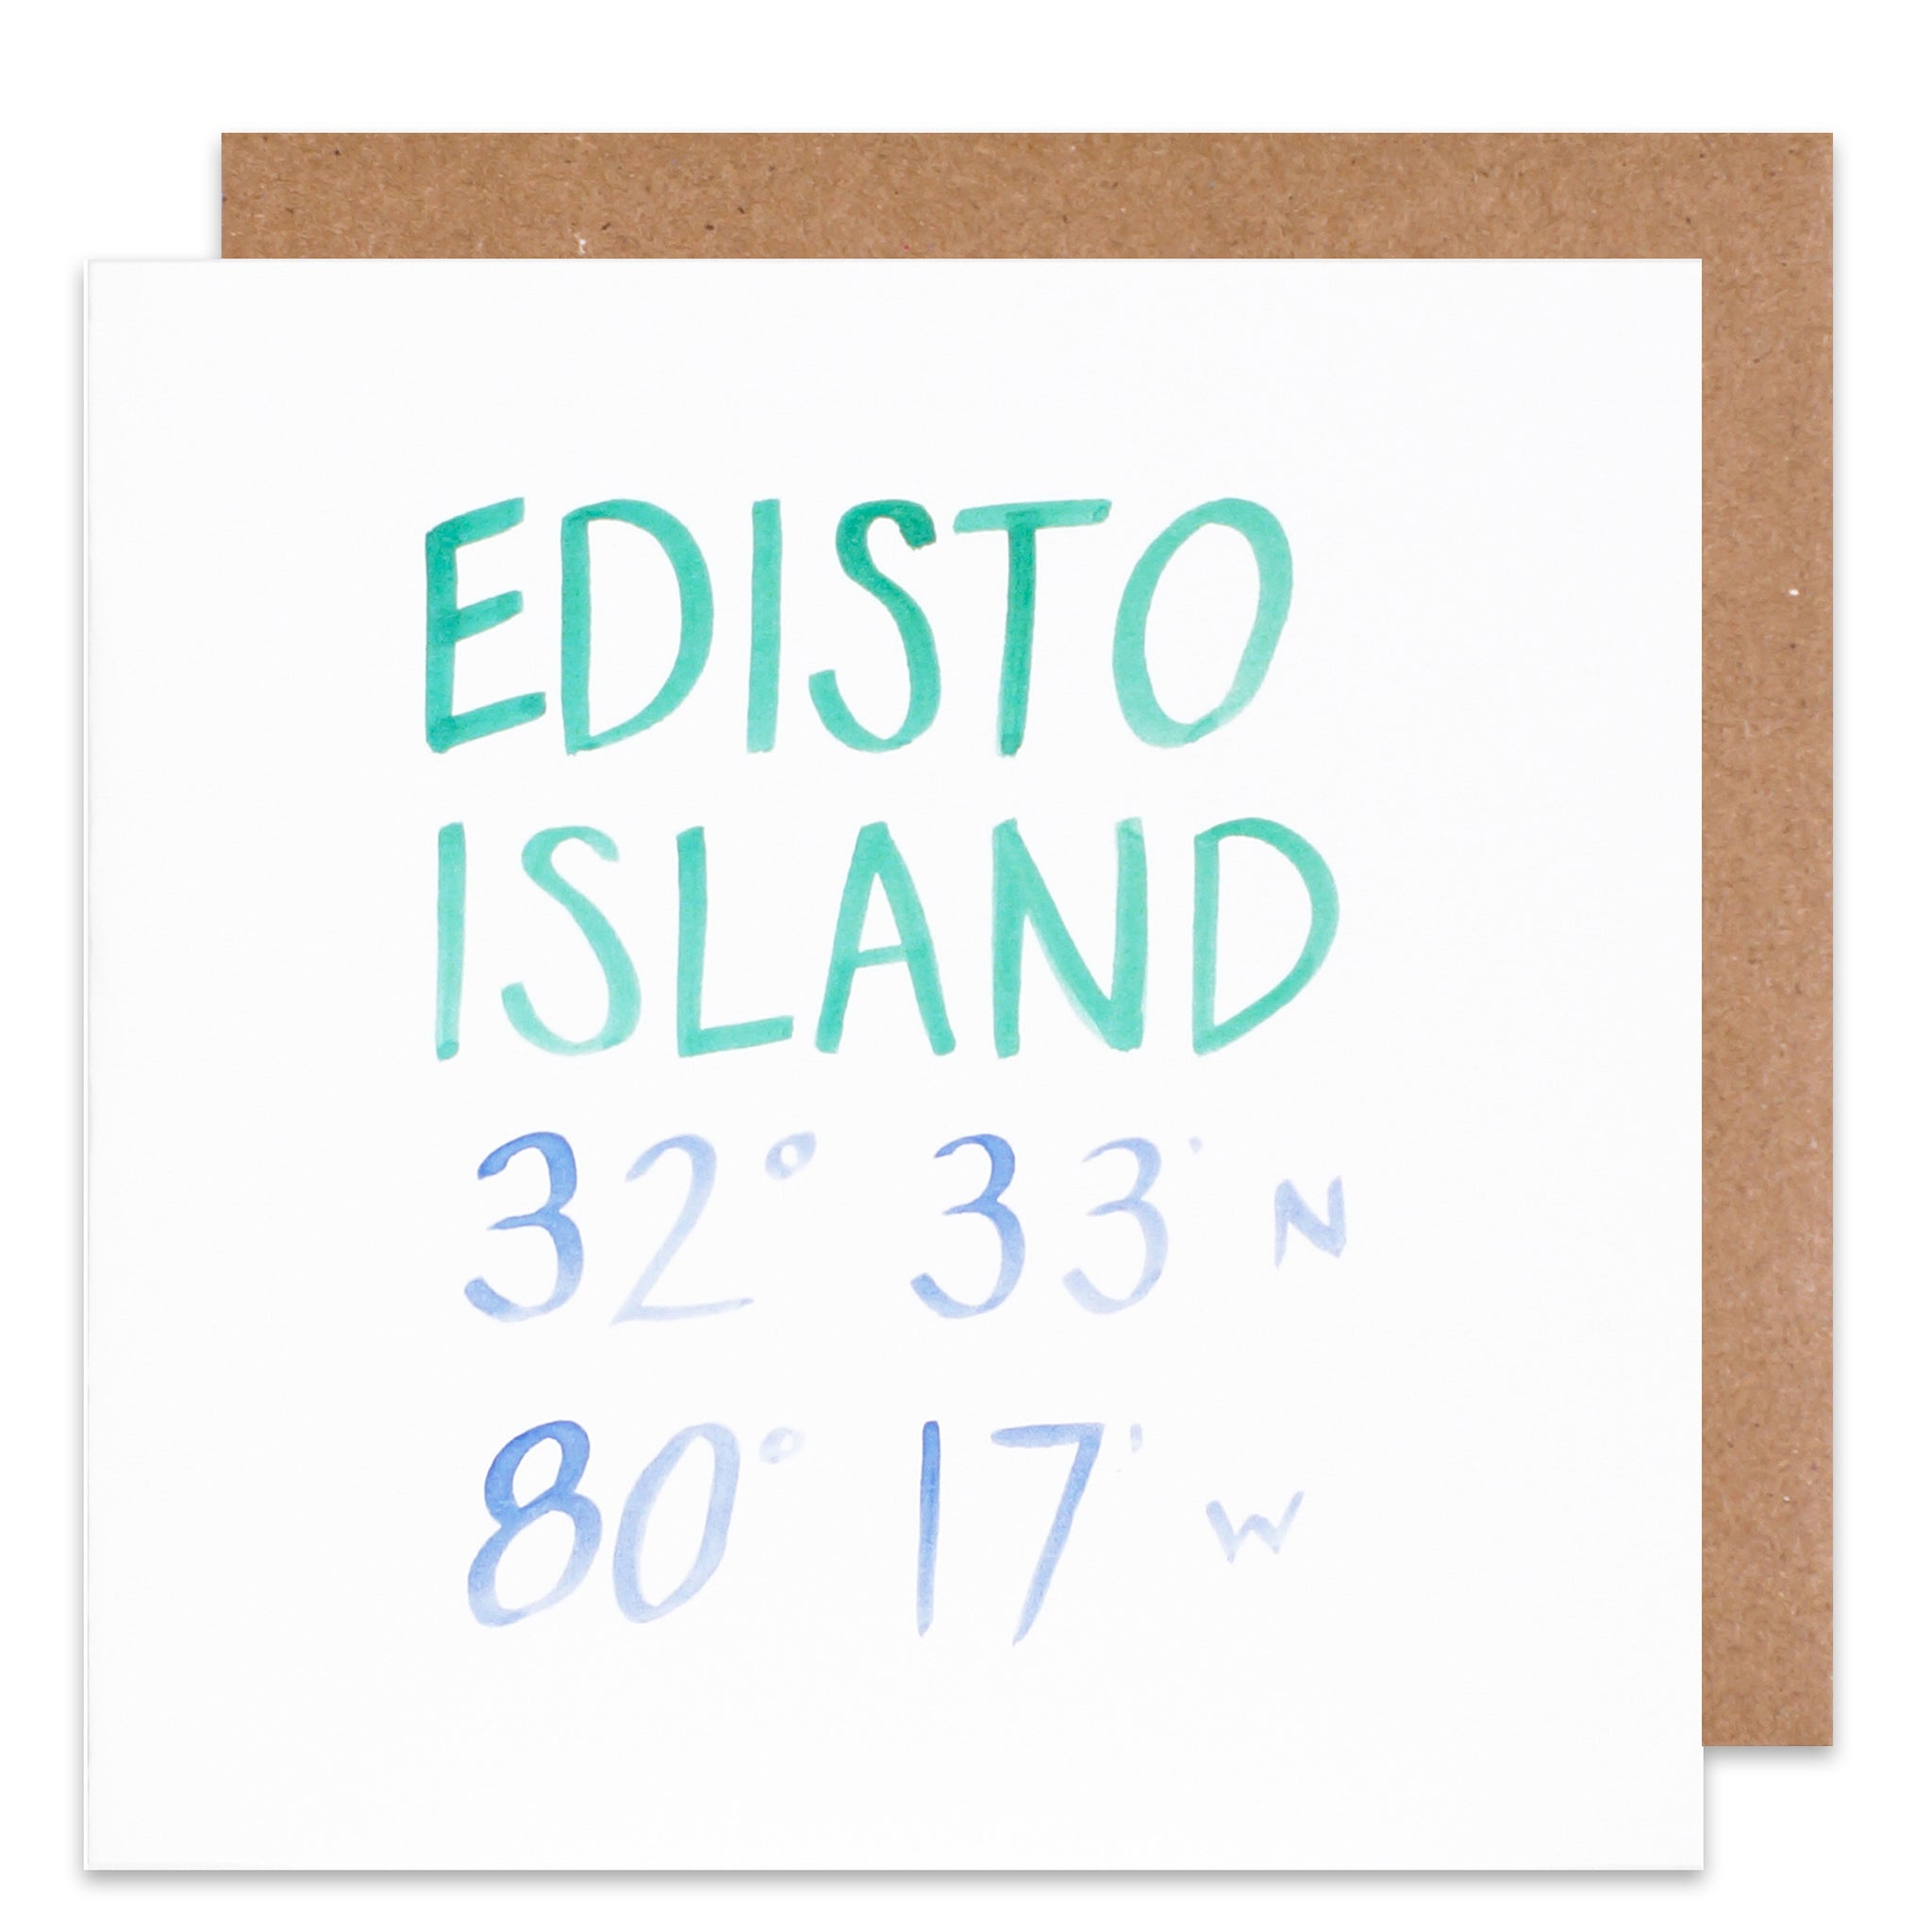 edisto island south carolina coordinate card